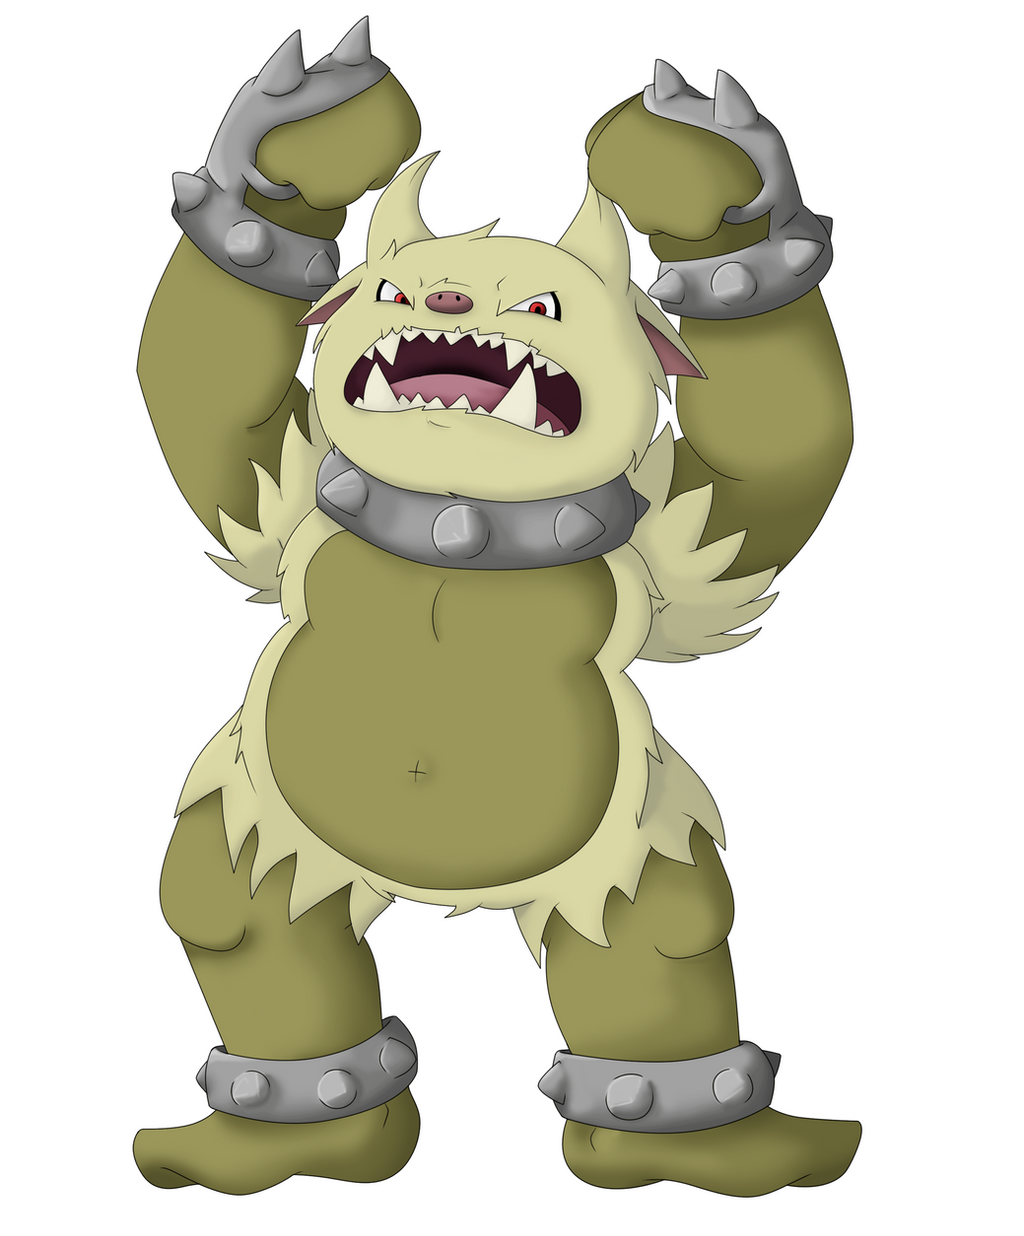 Evolution of Primeape by Twime777